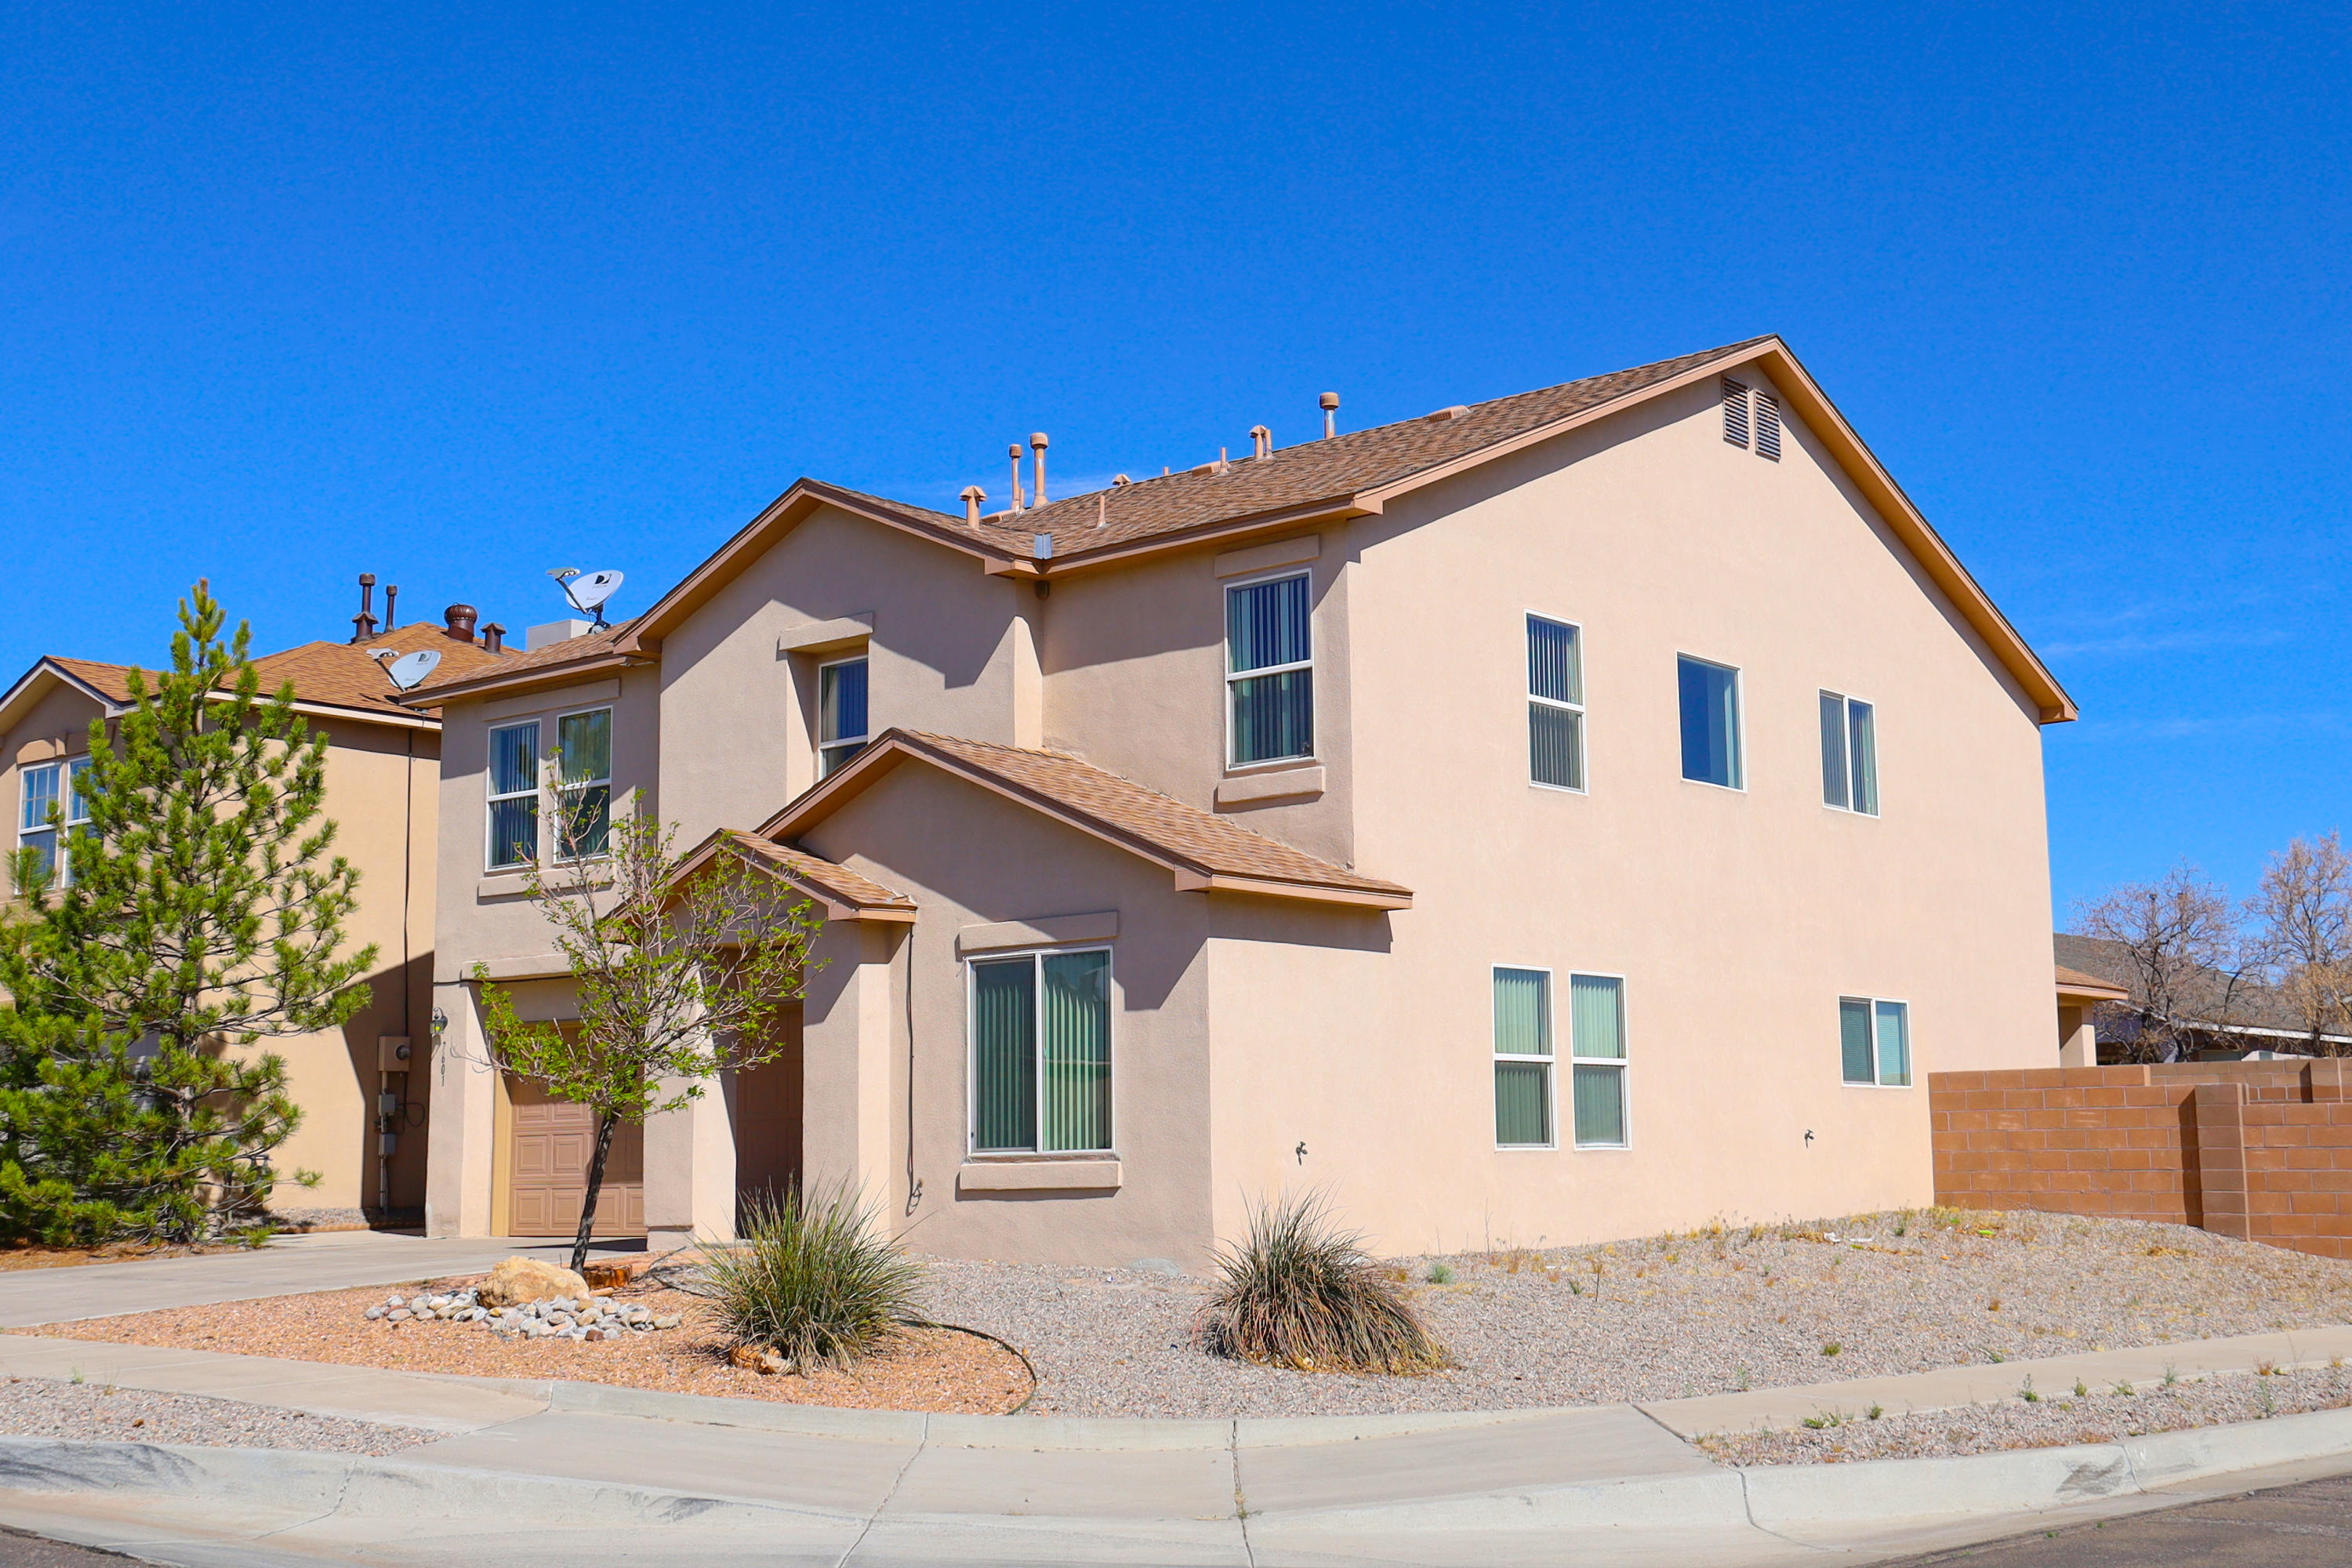 Squeeky clean two-story in prestigeous Ventana Ranch!  Open floor plan.  Kitchen will please even the pickiest chef with an island and plenty of cabinets.  Spacious  master bedroom.  Easy care Laminate flooring downstairs with plush carpeting upstairs.  Corner lot too!